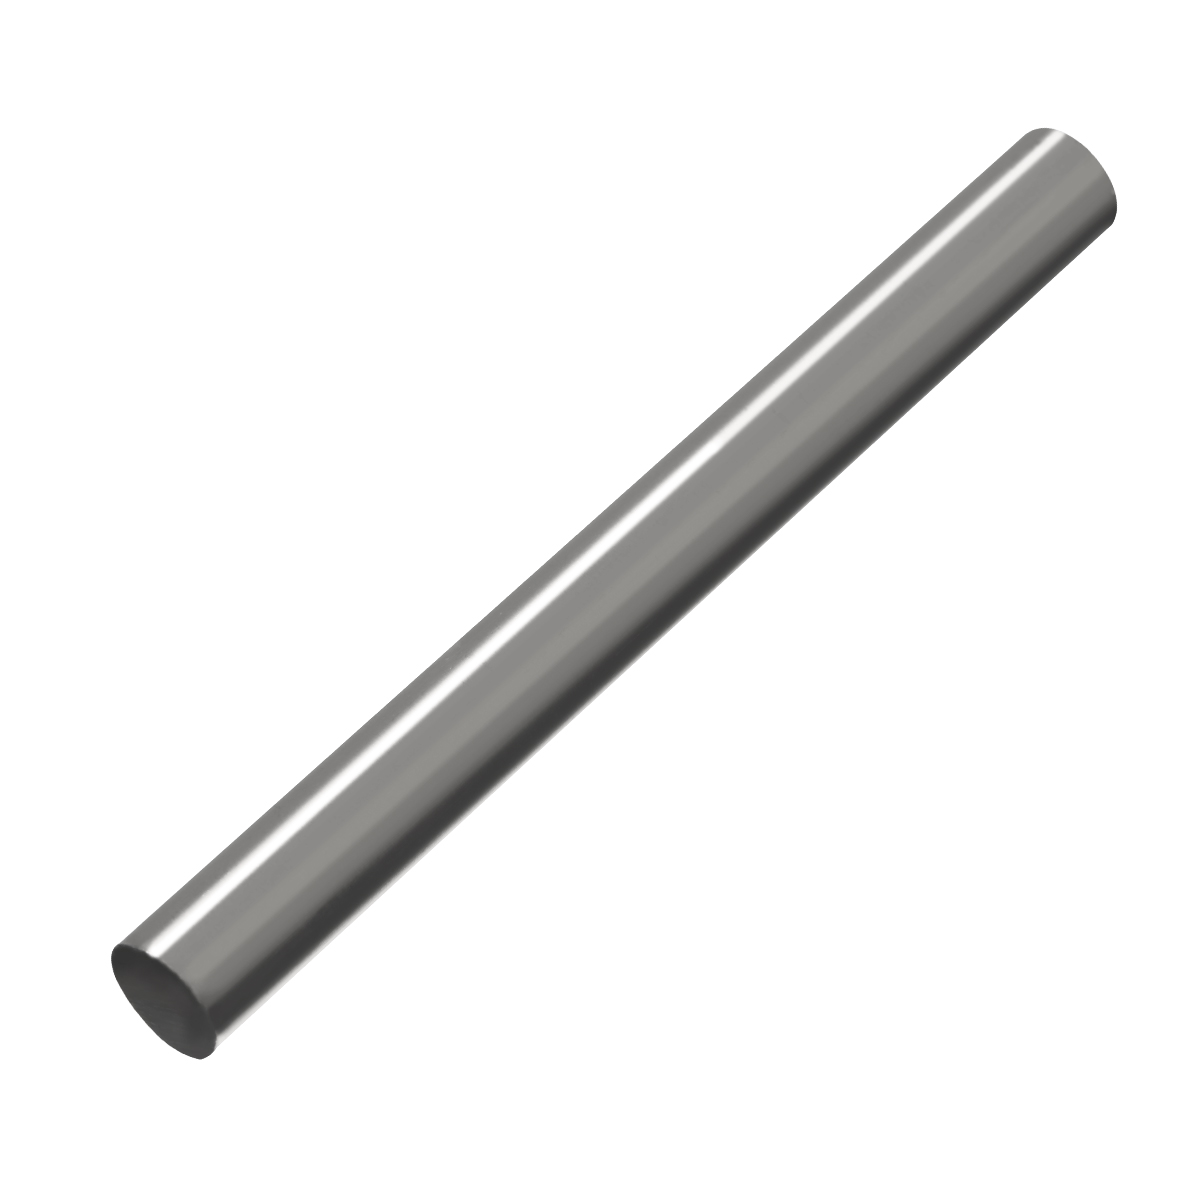 1pc 10mm*100mm Titanium Rod Ti Grade 2 GR2 Titanium Rod Shaft Round Bar For Industry Tool